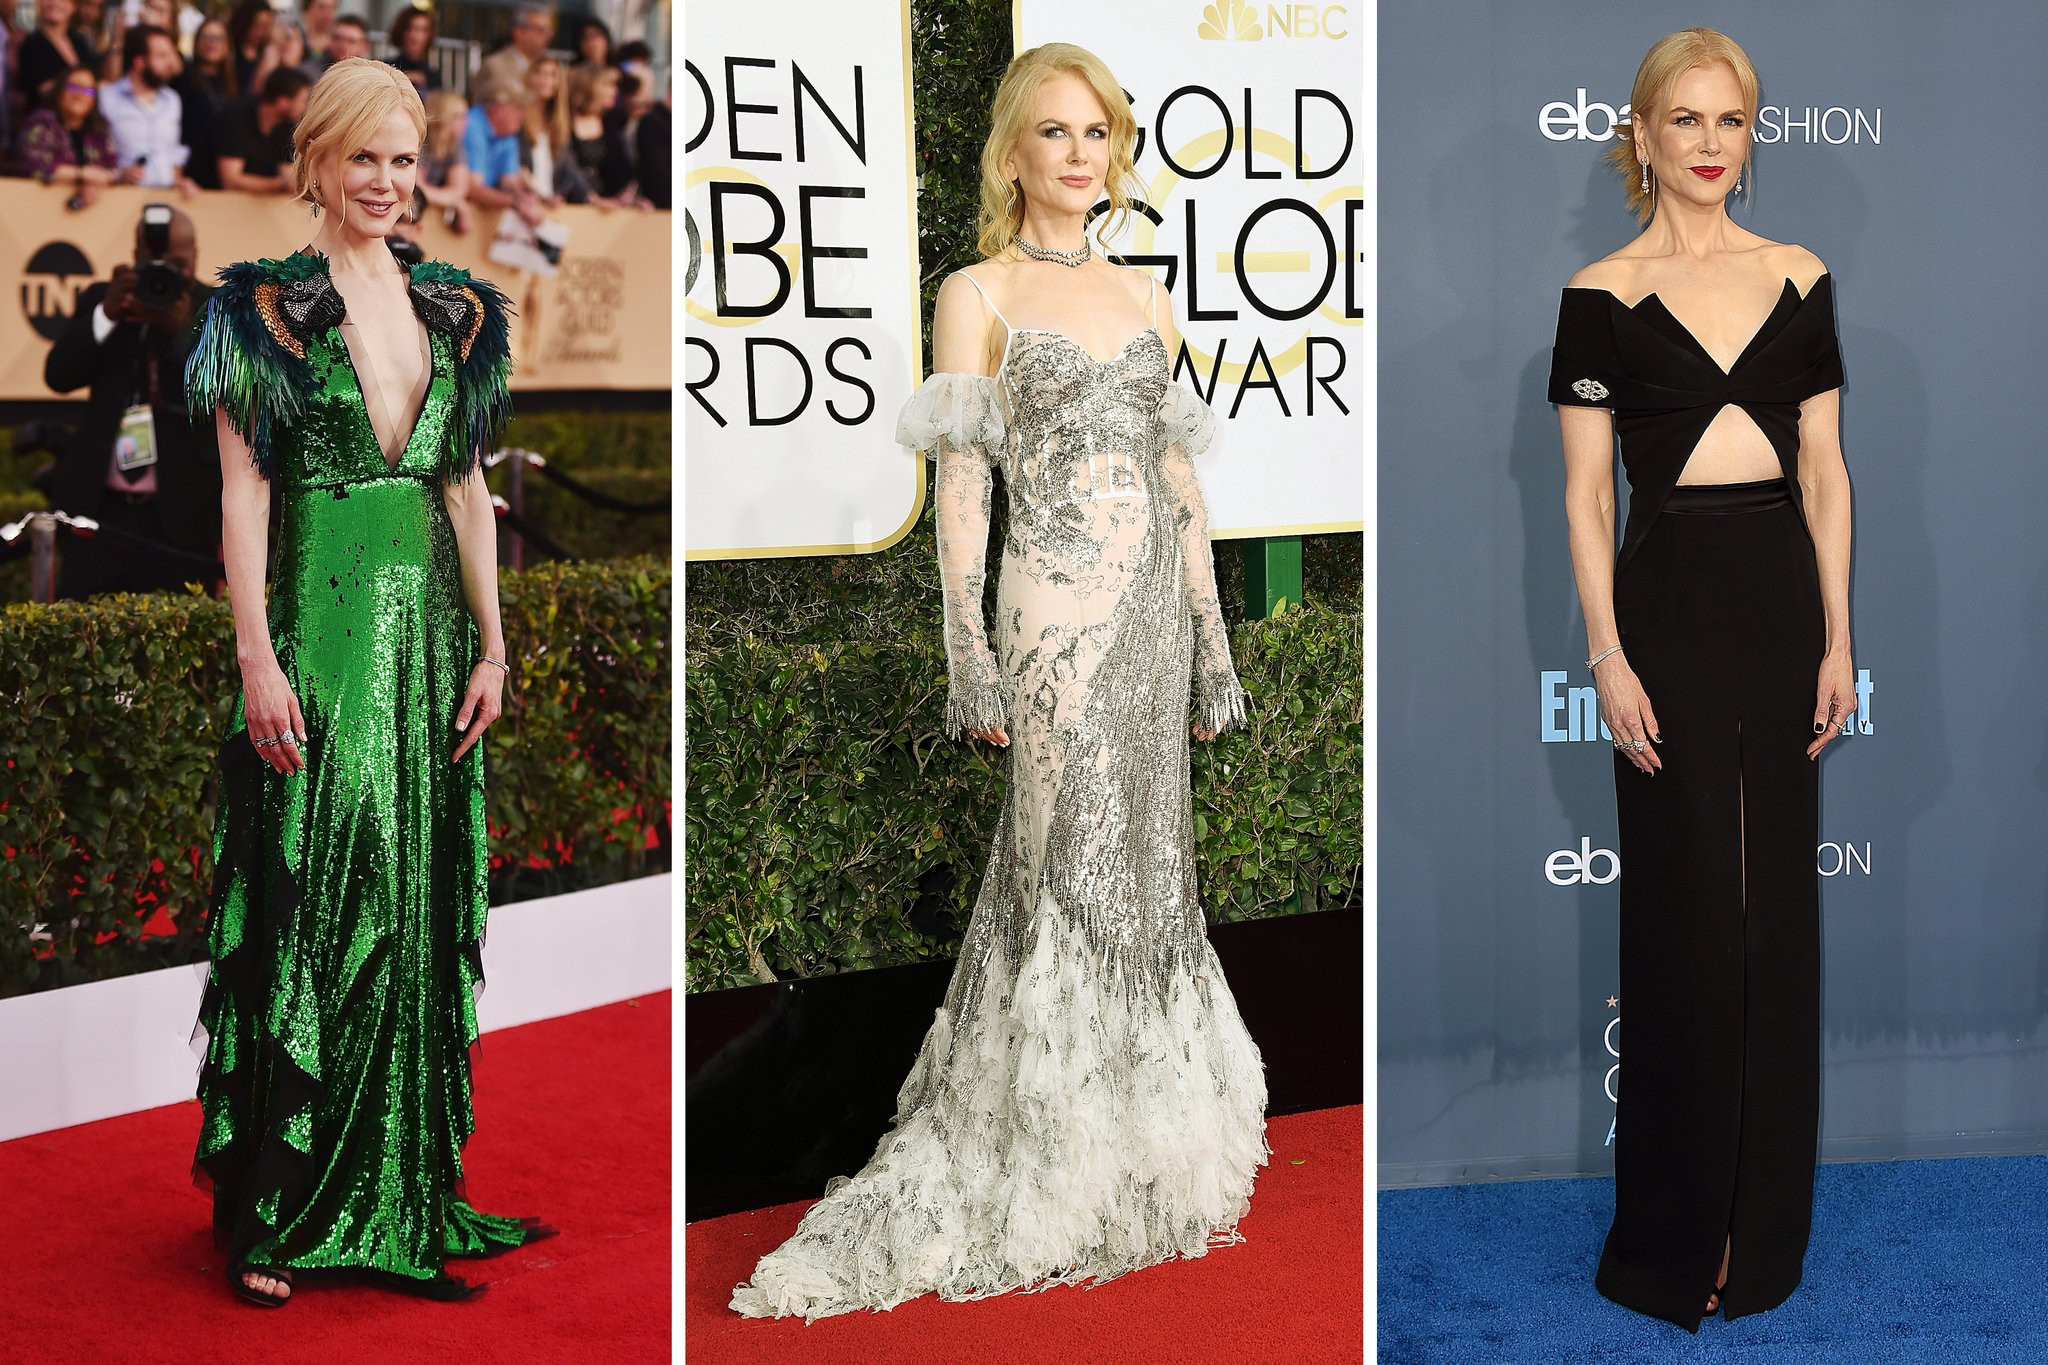 """- Nicole Kidman's strategy: Never play it safeBy BEE SHAPIRO(NY Times, 17 Feb 2017)""""She's not going the safe road,"""" said her stylist Julia von Boehm, pointing to the controversial white and silver Alexander McQueen gown her client wore to the Golden Globes last month."""